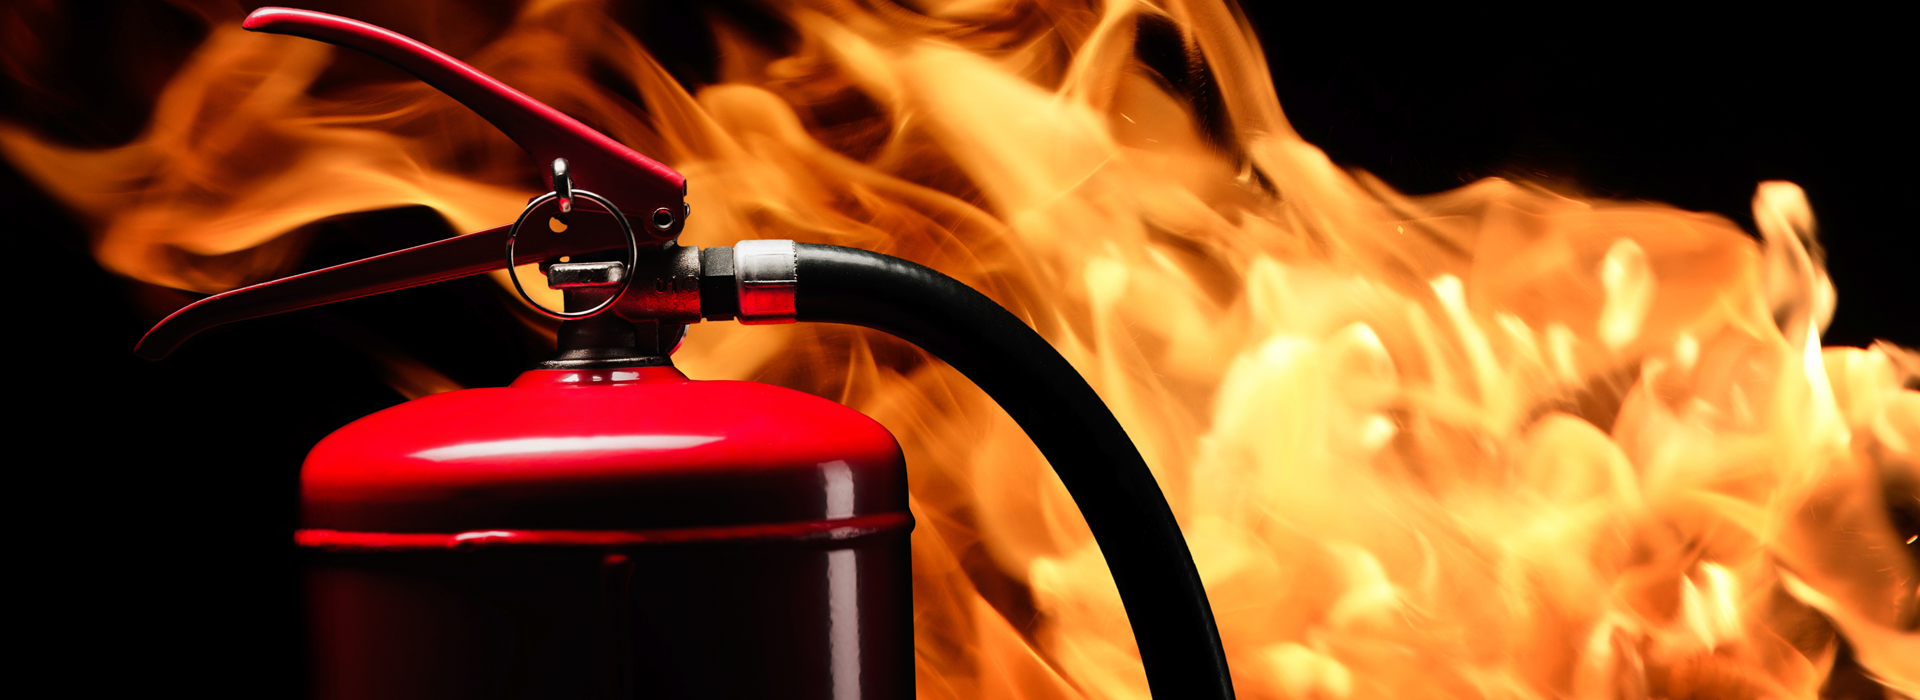 dangers of fire Sustainable energy are electric vehicles a fire hazard lithium-ion batteries have risks, but they can be managed to prevent fires in.